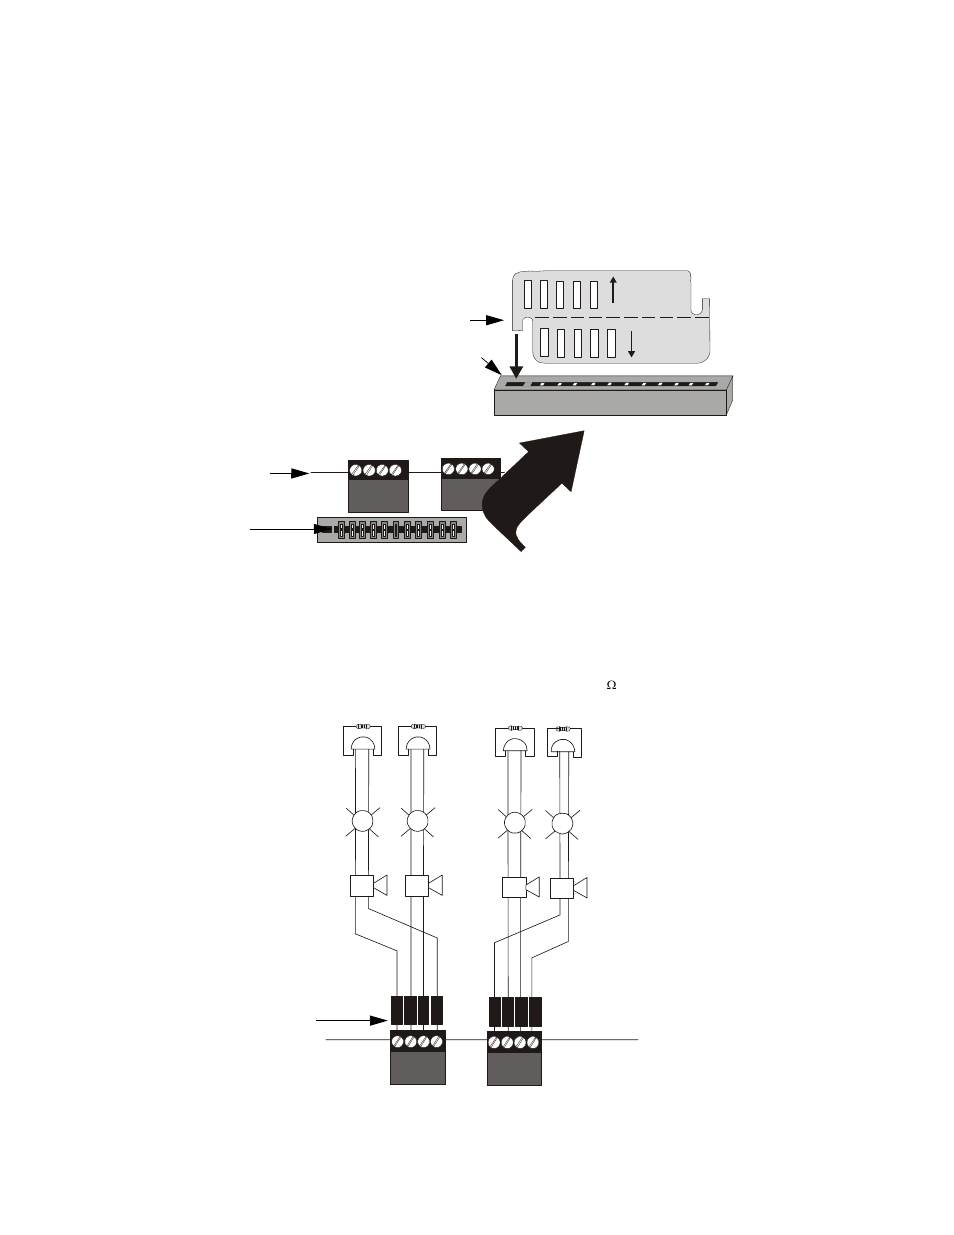 1 configuring nacs, 2 style y (class b) nac wiring, Installation |